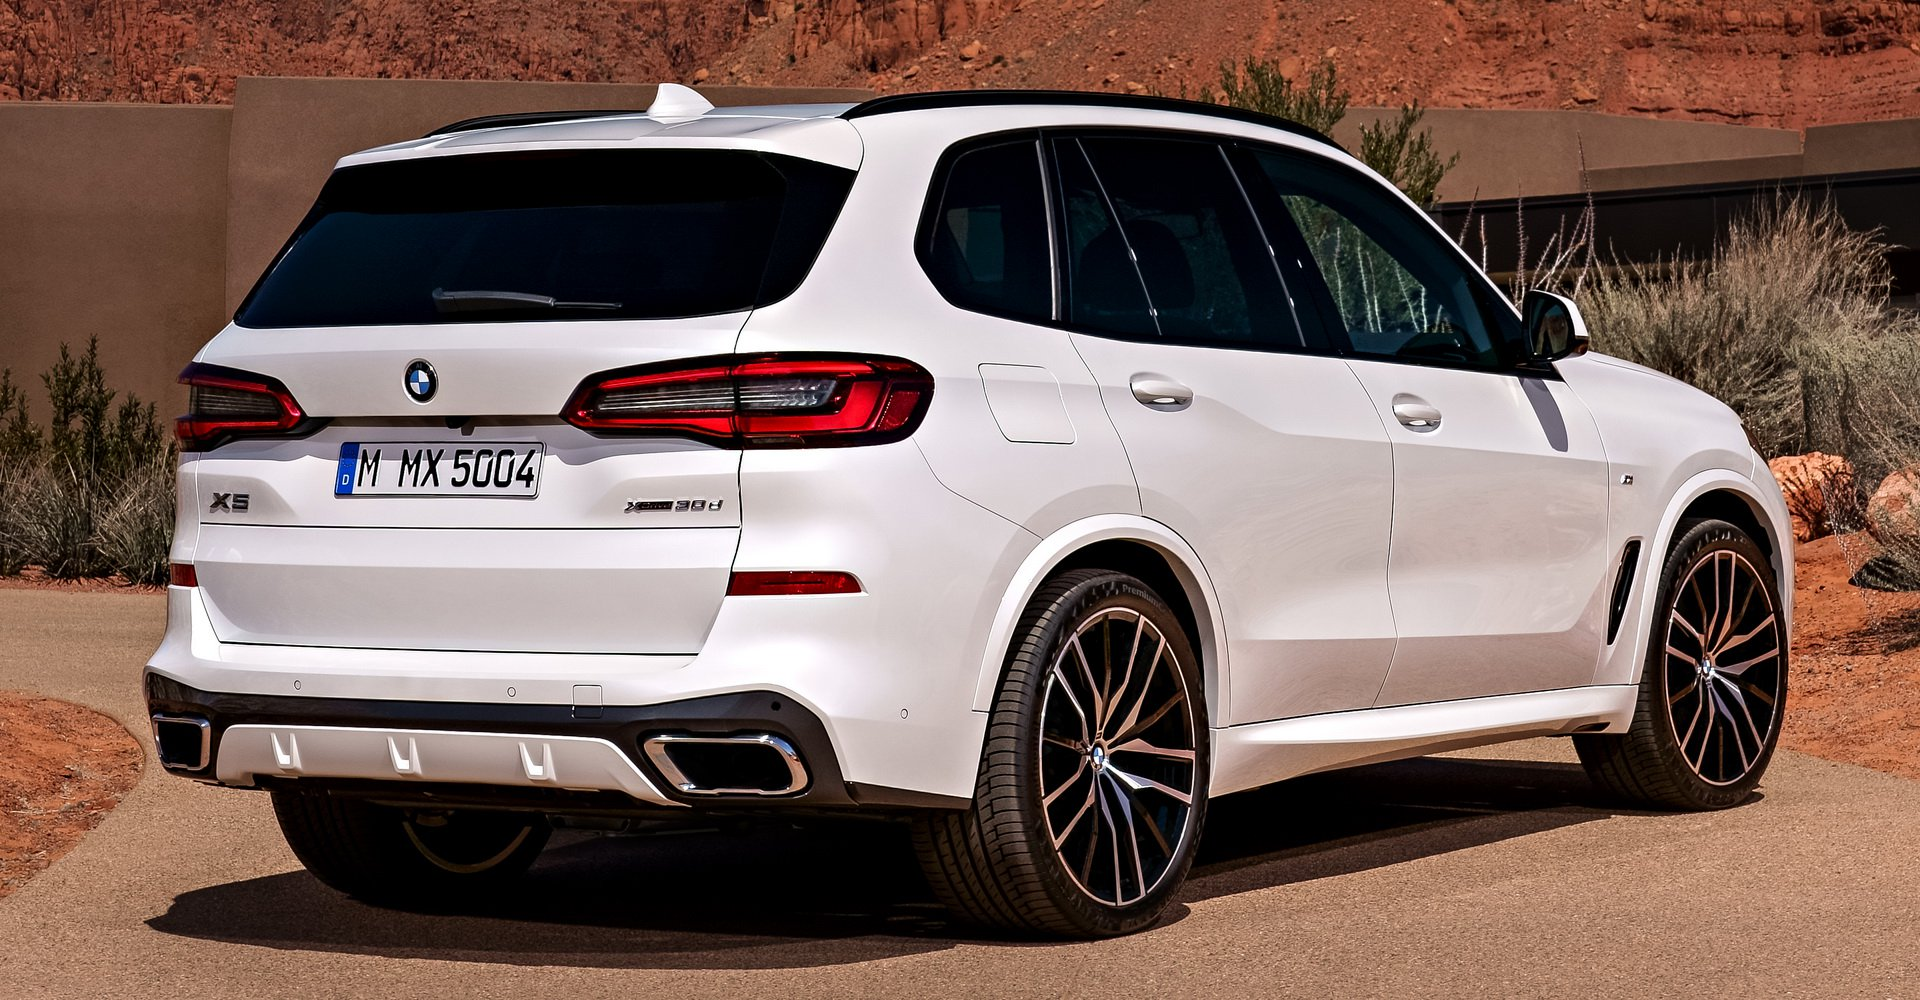 so-sanh-comp-mercedes-gle-vs-bmw-x5-8.jpg